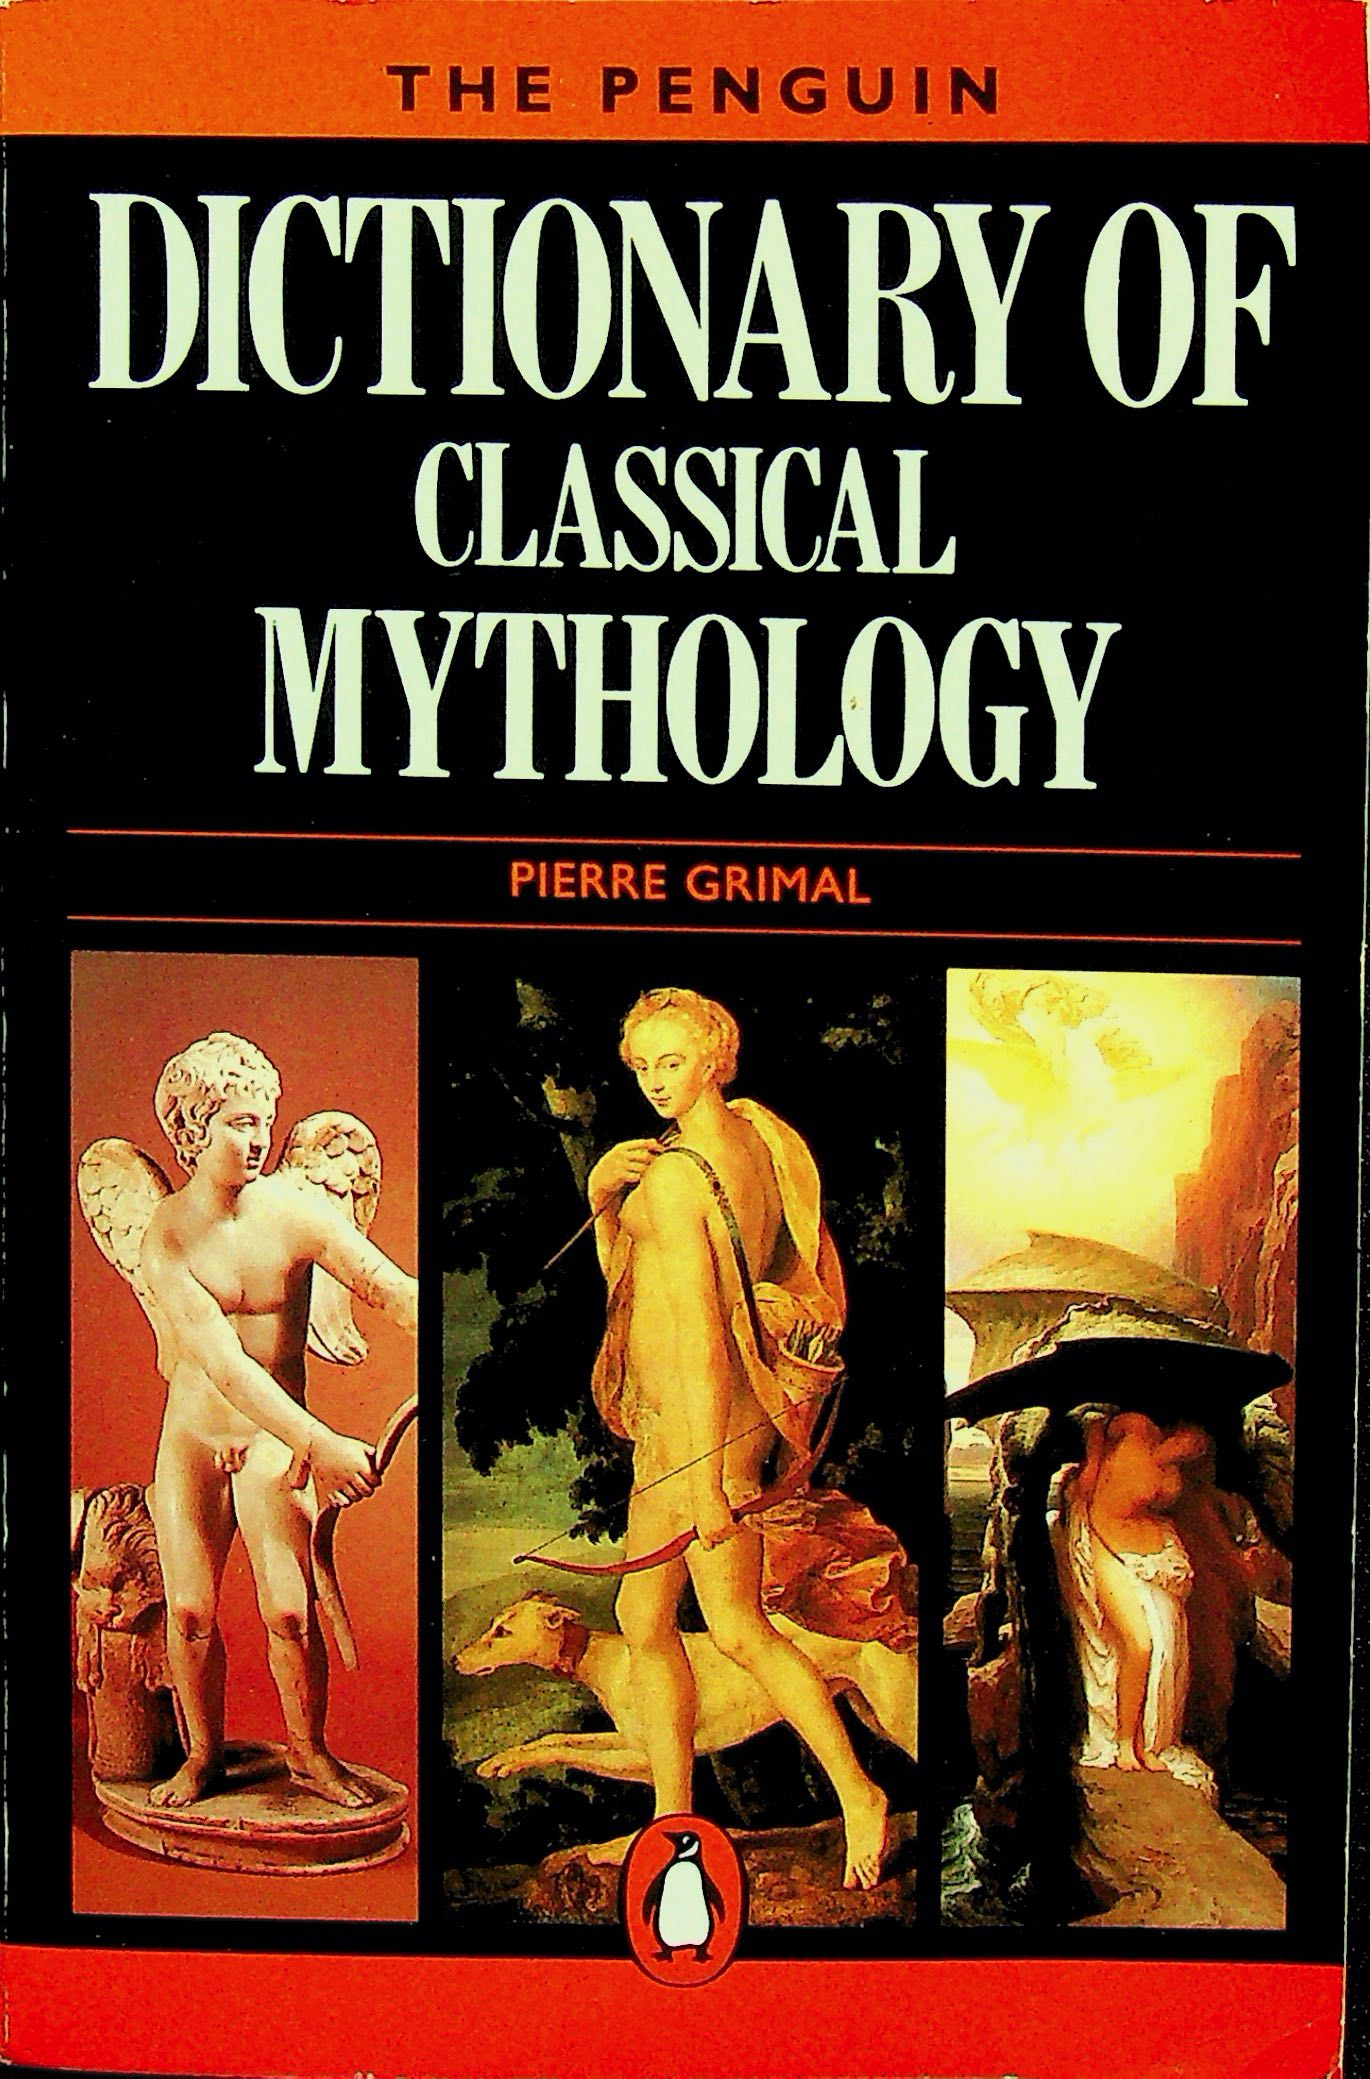 Image for The Penguin Dictionary of Classical Mythology (Penguin Dictionary)